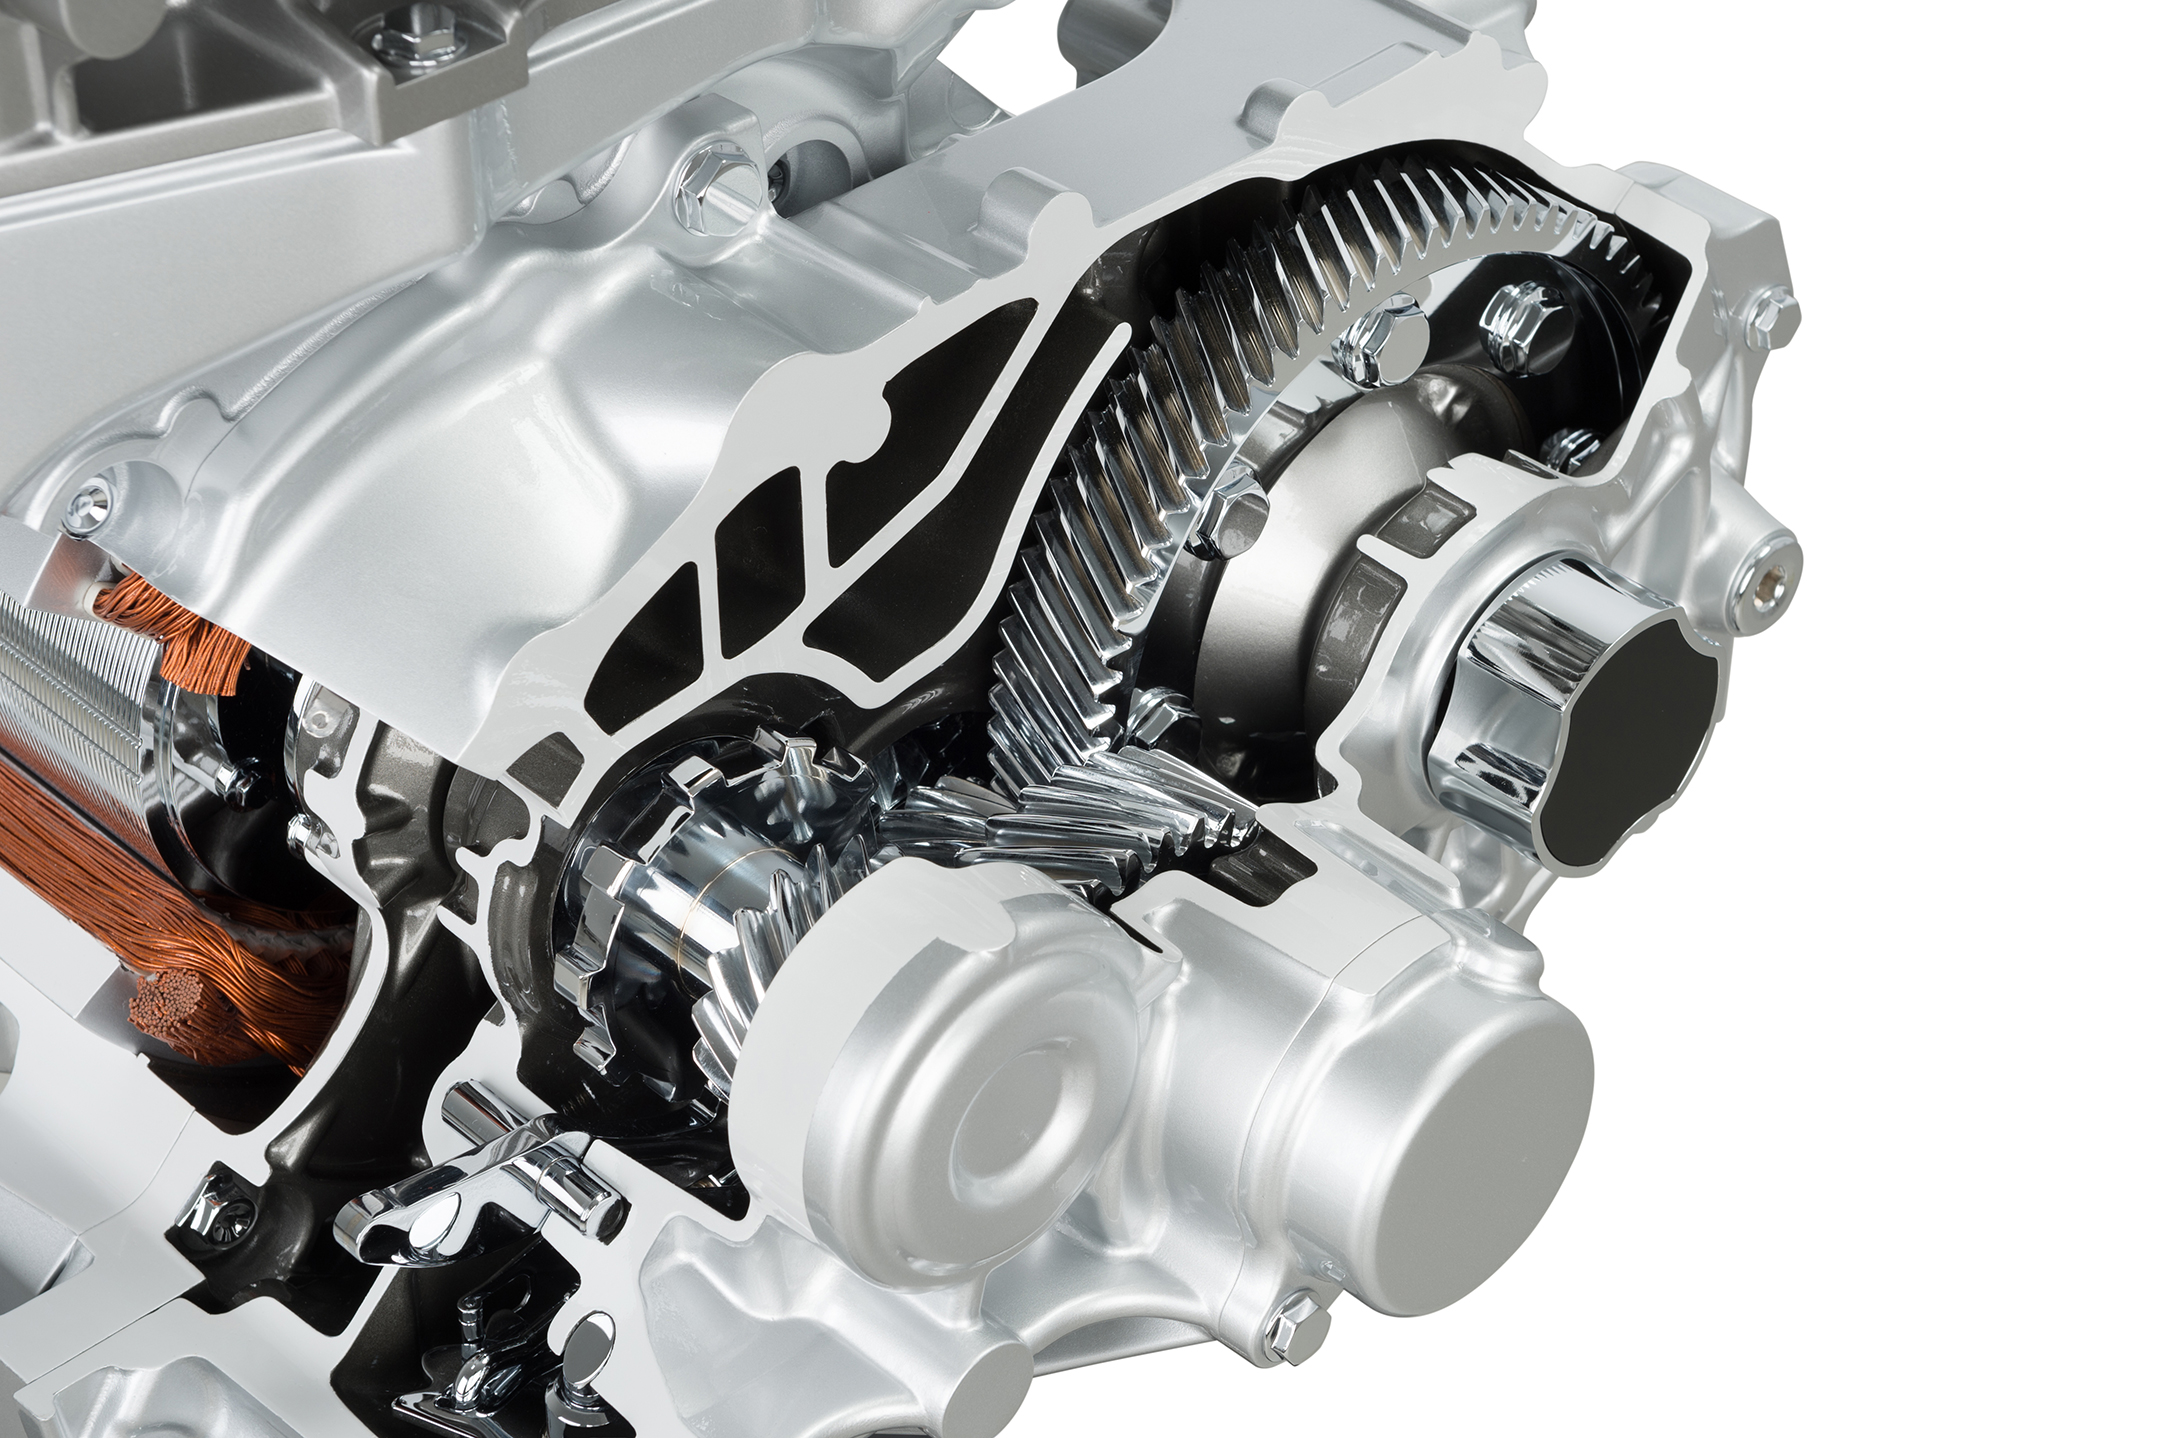 Nissan LEAF 2.0 - 2017 - engine e-powertrain inside gears